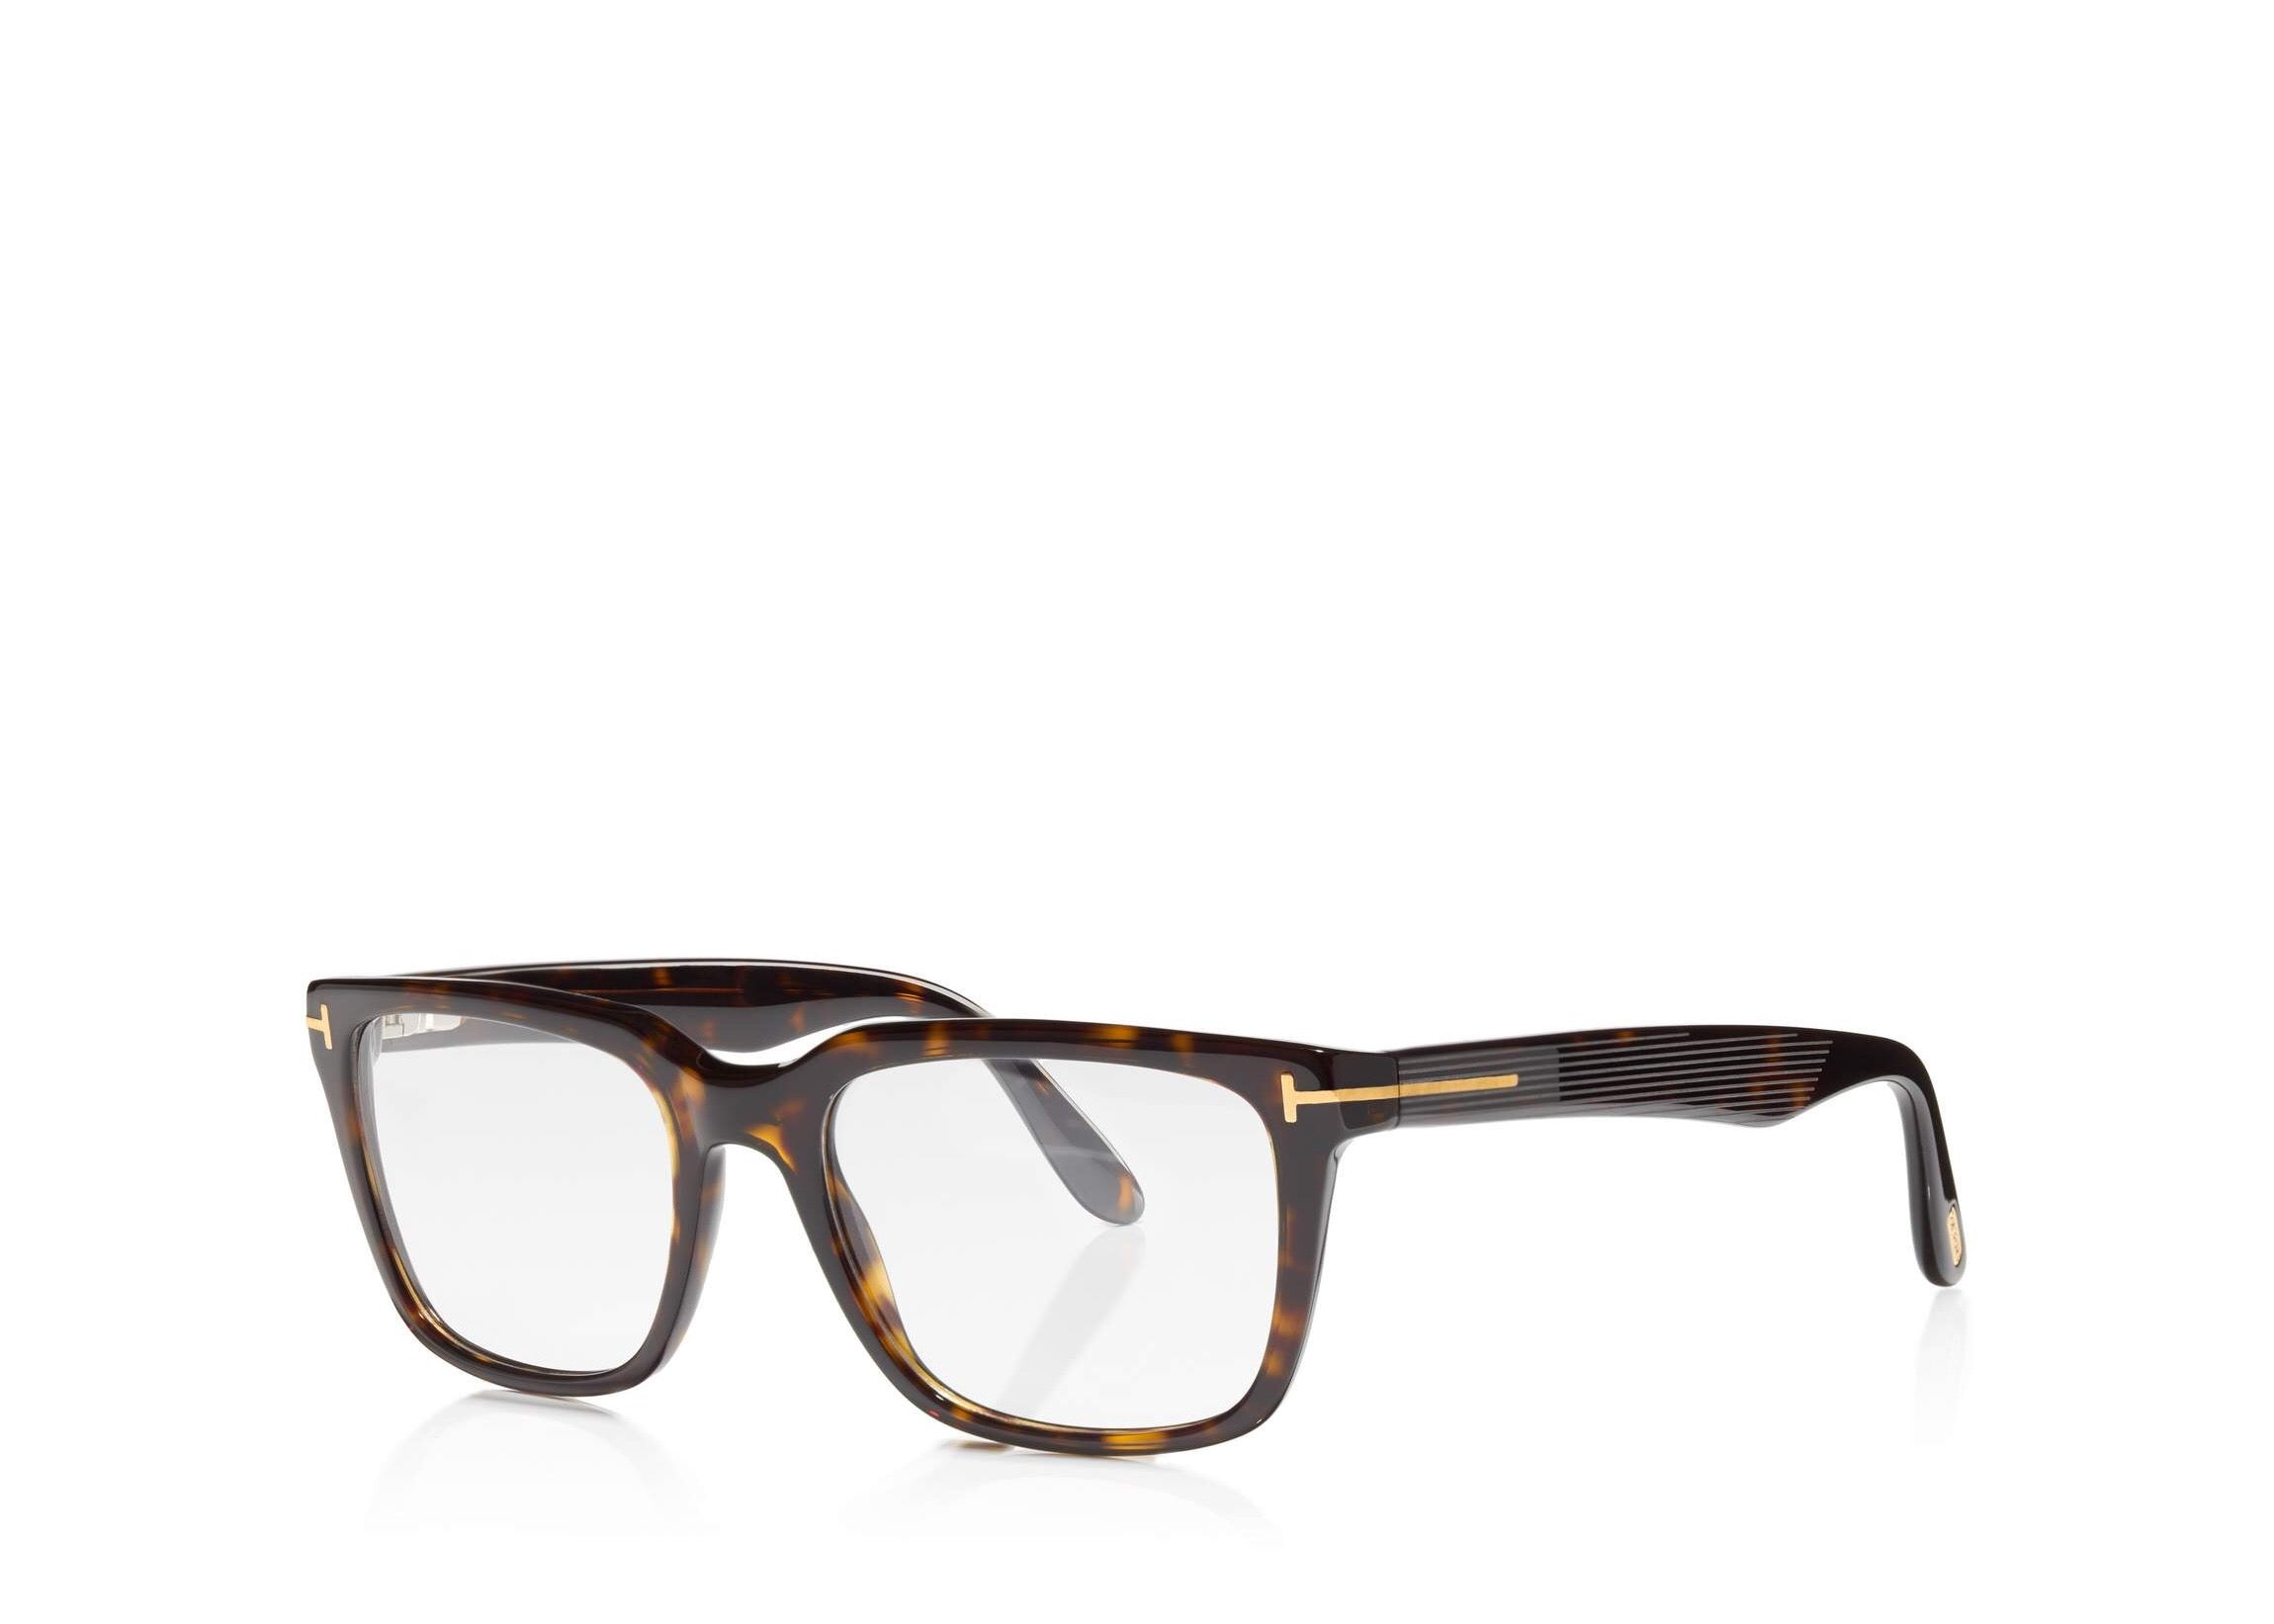 d6c3dbe36de ... 6468962907 TOM FORD FT 5304 MEN S SQUARE-FRAME OPTICAL GLASSES